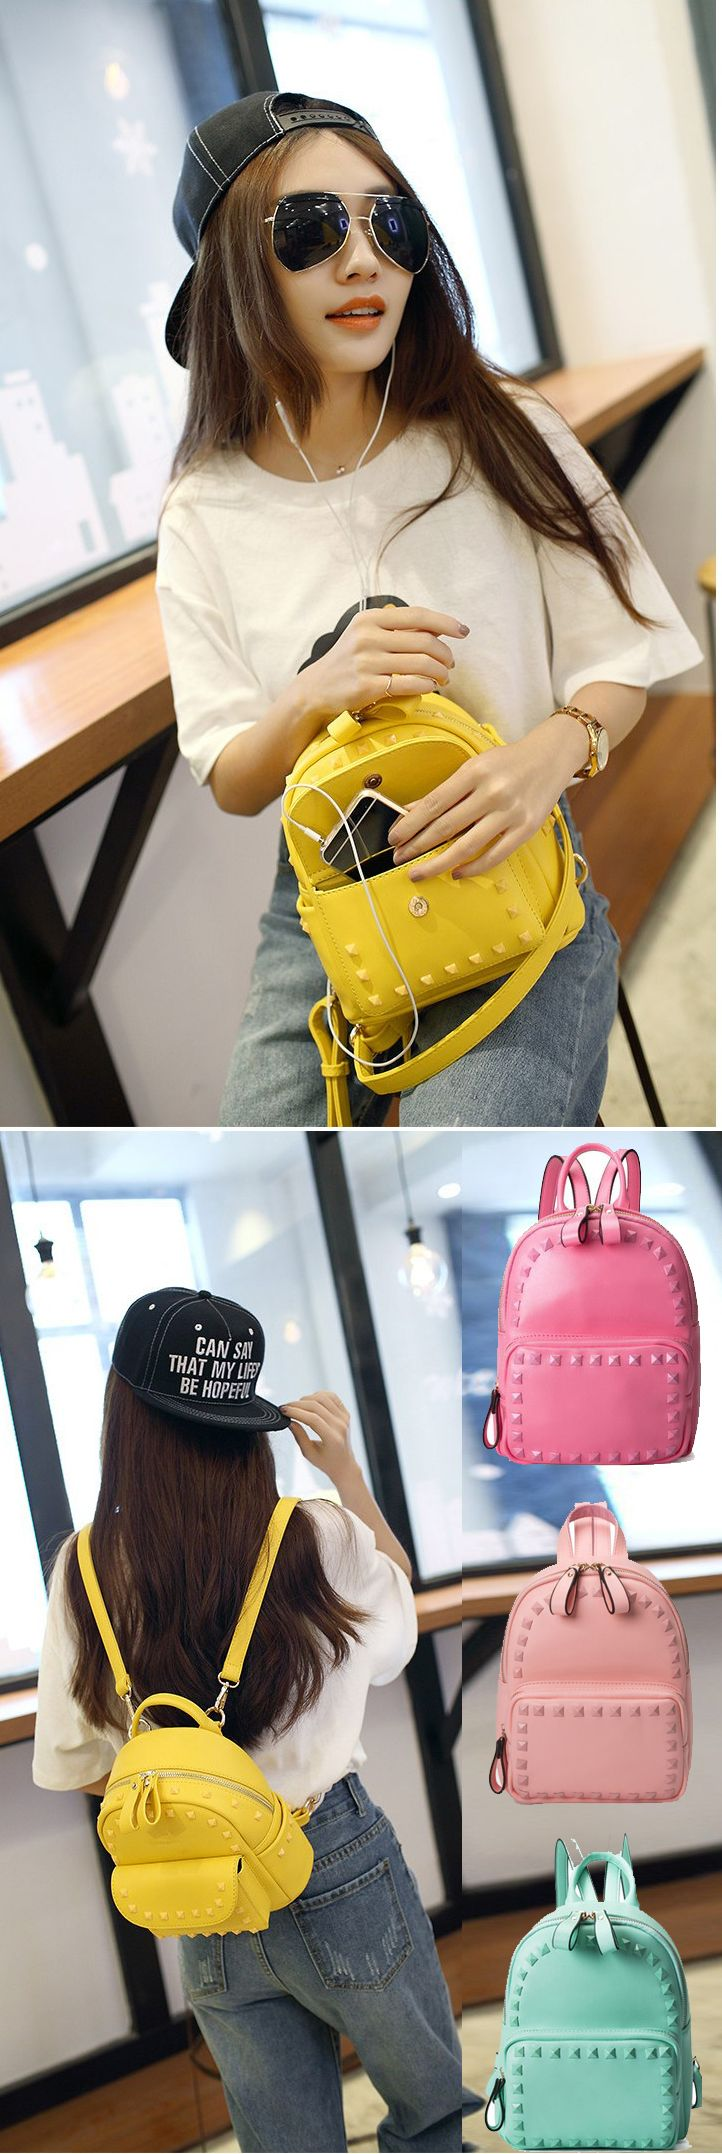 2017 New Arrival Fresh Multiple Colors Solid Rivet College Travel Backpack Cute PU Bag for Girls backpack trends 2017,backpack trends 2017 school,backpack trends 2017 women,backpack yellow,backpack yellow fashion,backpack pattern,backpack patches,backpack patches diy,backpack patches travel,backpack patches vintage,backpack for teens,backpack for teens school,backpack for teens 2017,backpack for travel,backpack for travel women,backpack for traveling,backpack for traveling bags,